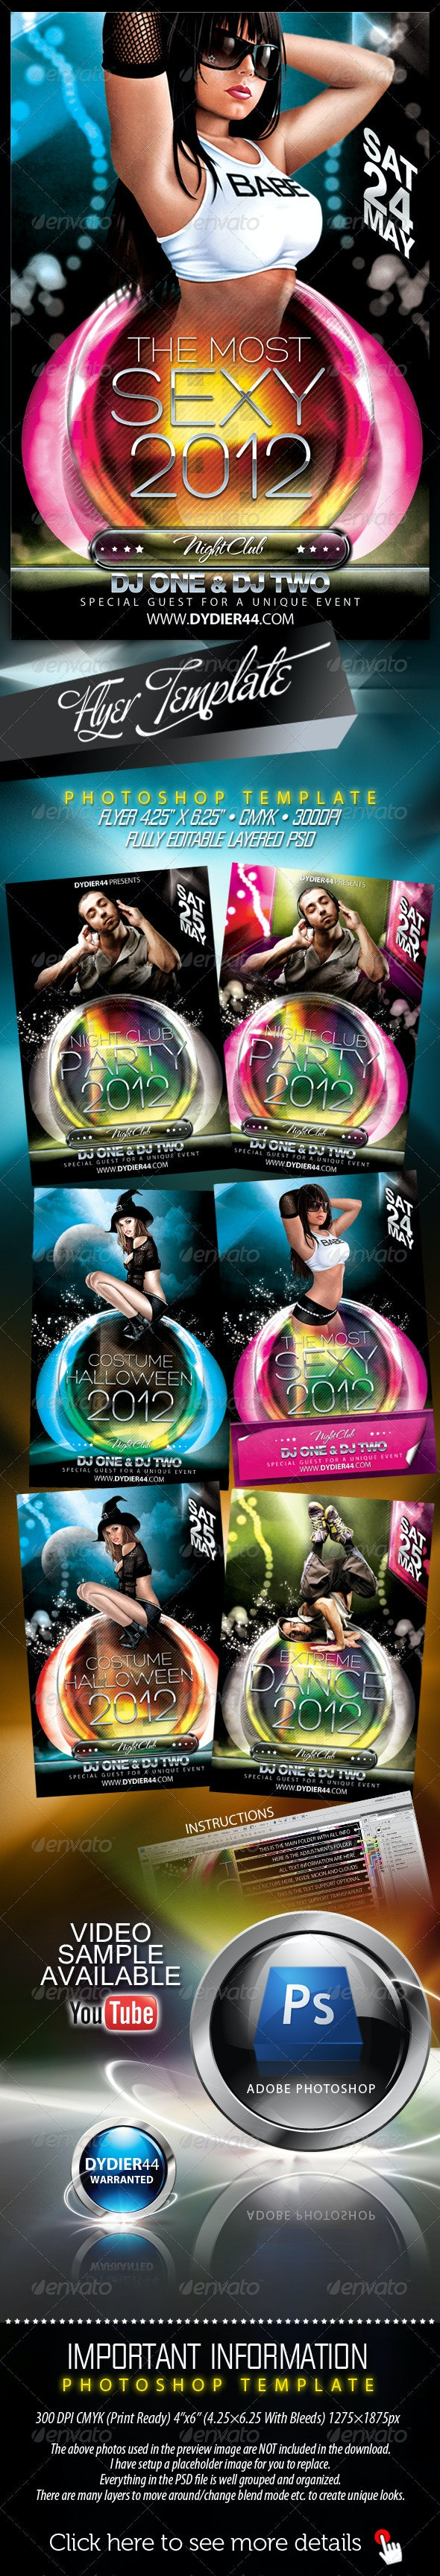 Night Club Party 2012 (Flyer Template 4x6) - Clubs & Parties Events